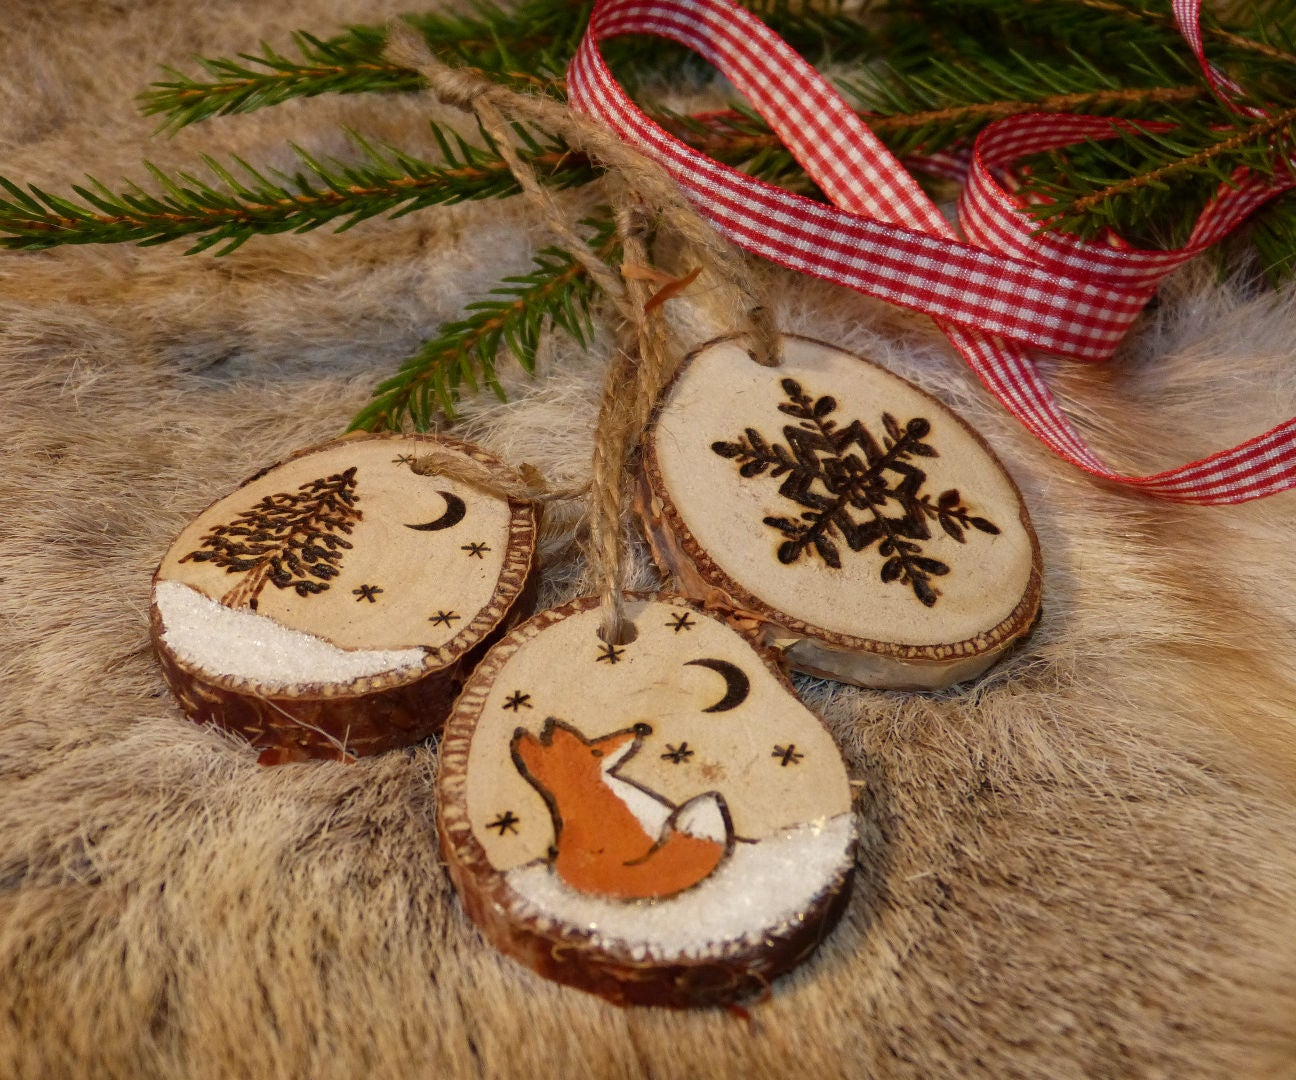 Easy Pyrography Ornaments 8 Steps With Pictures Instructables